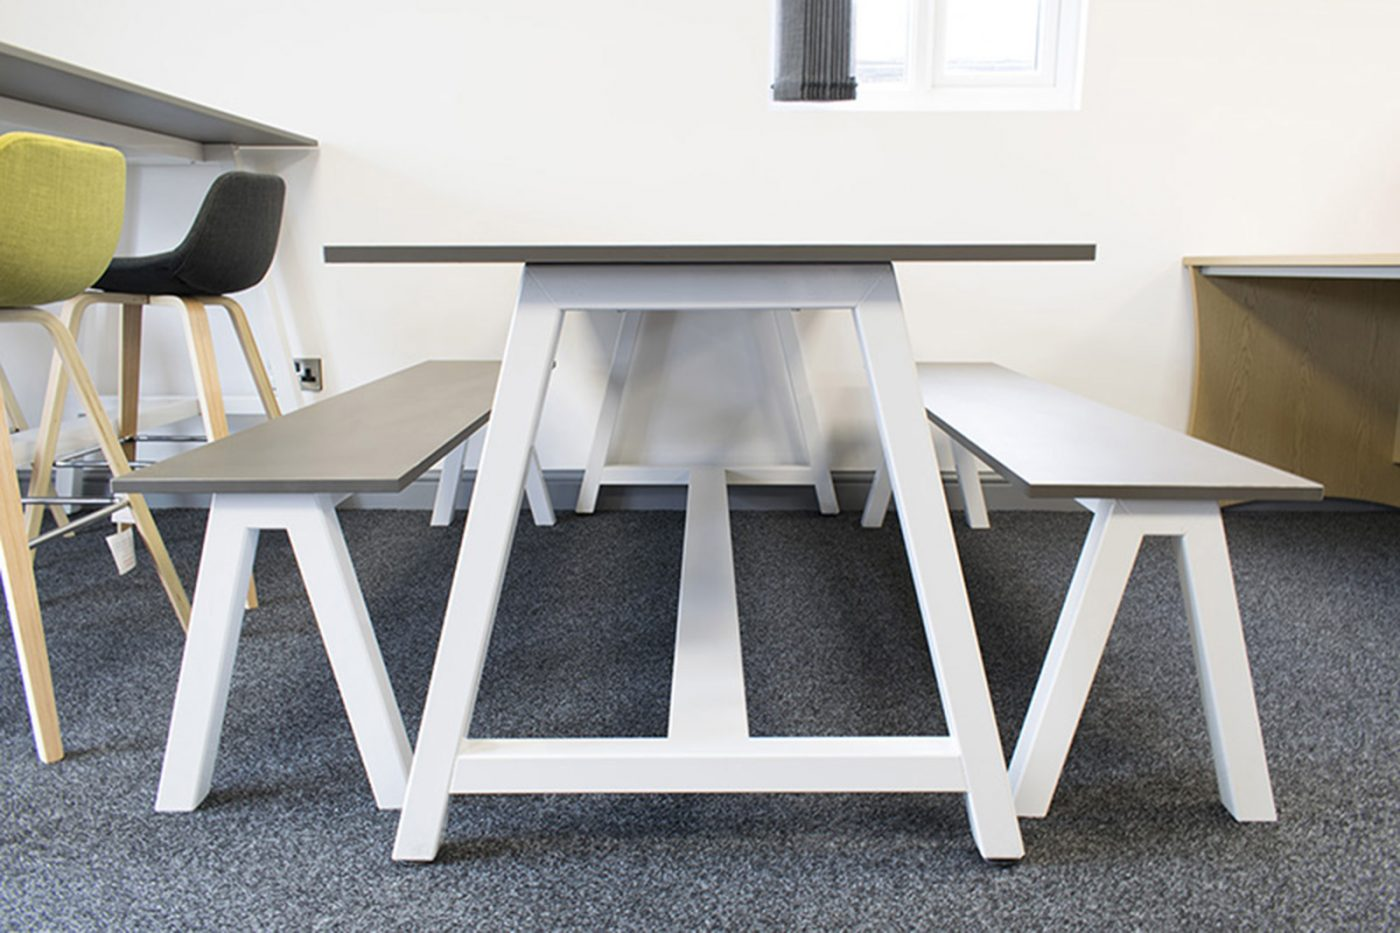 A frame table, meeting table, desk high table, breakout tables, bench seat